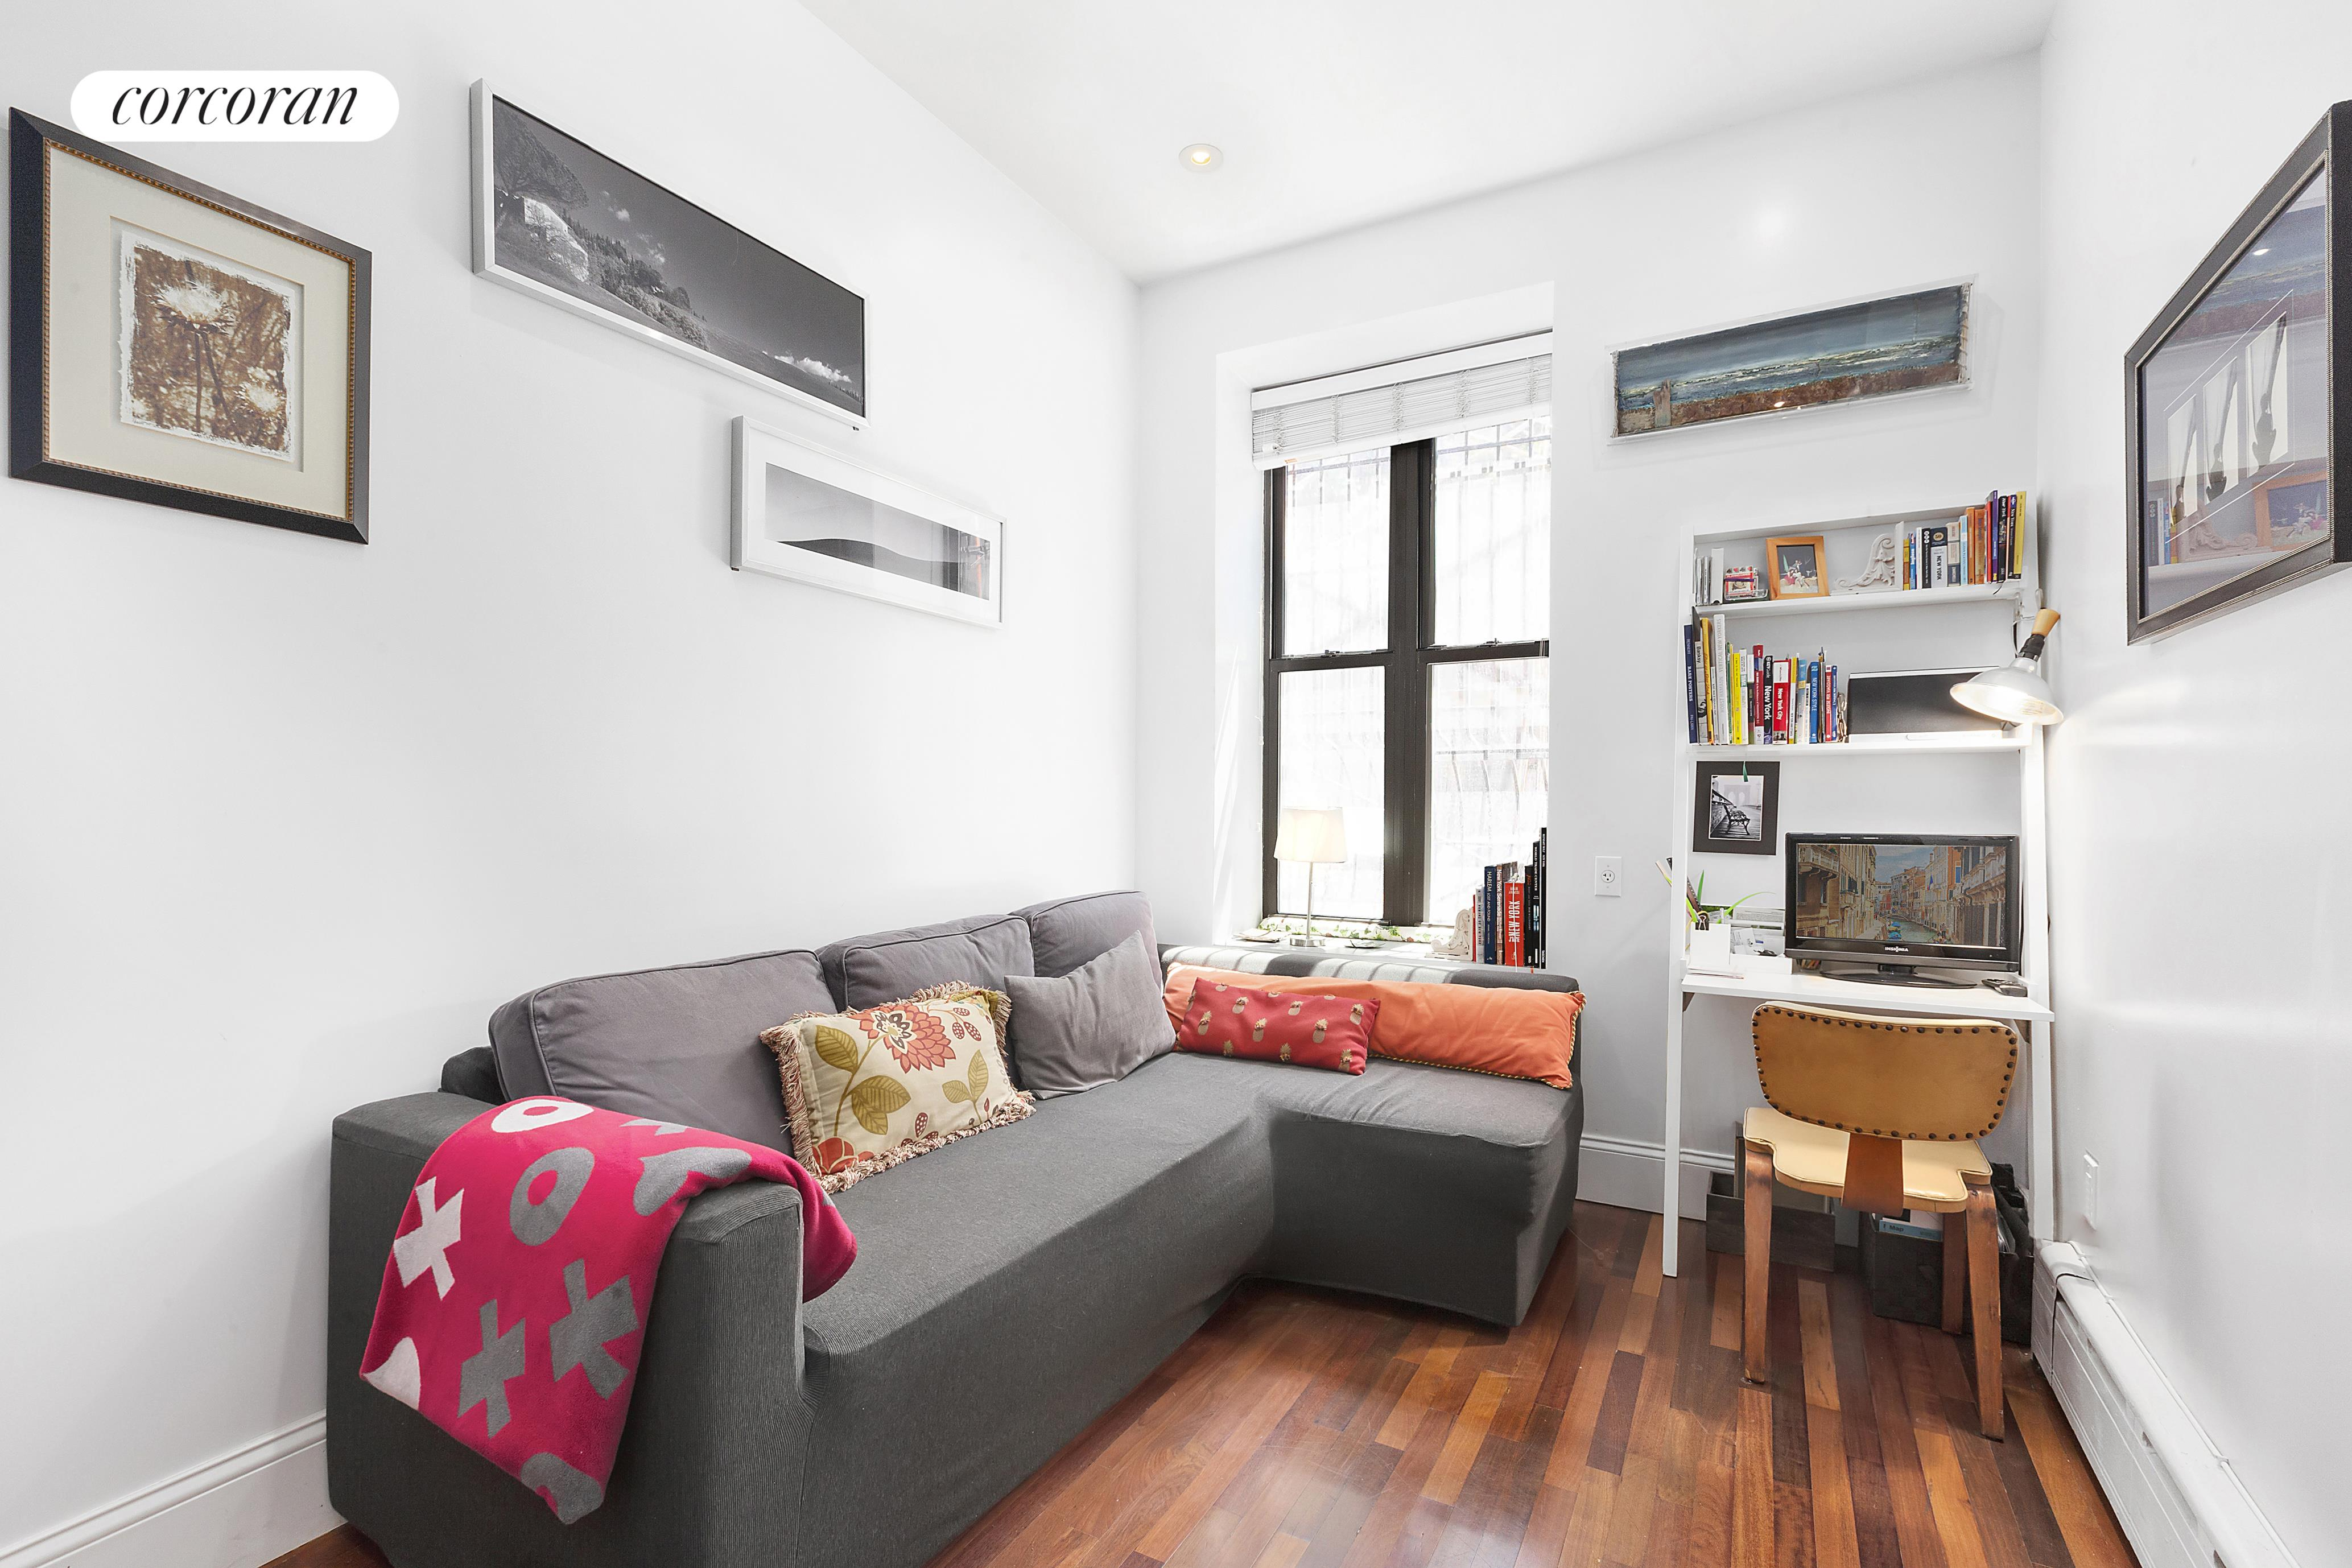 Apartment for sale at 161 West 133rd Street, Apt 1B